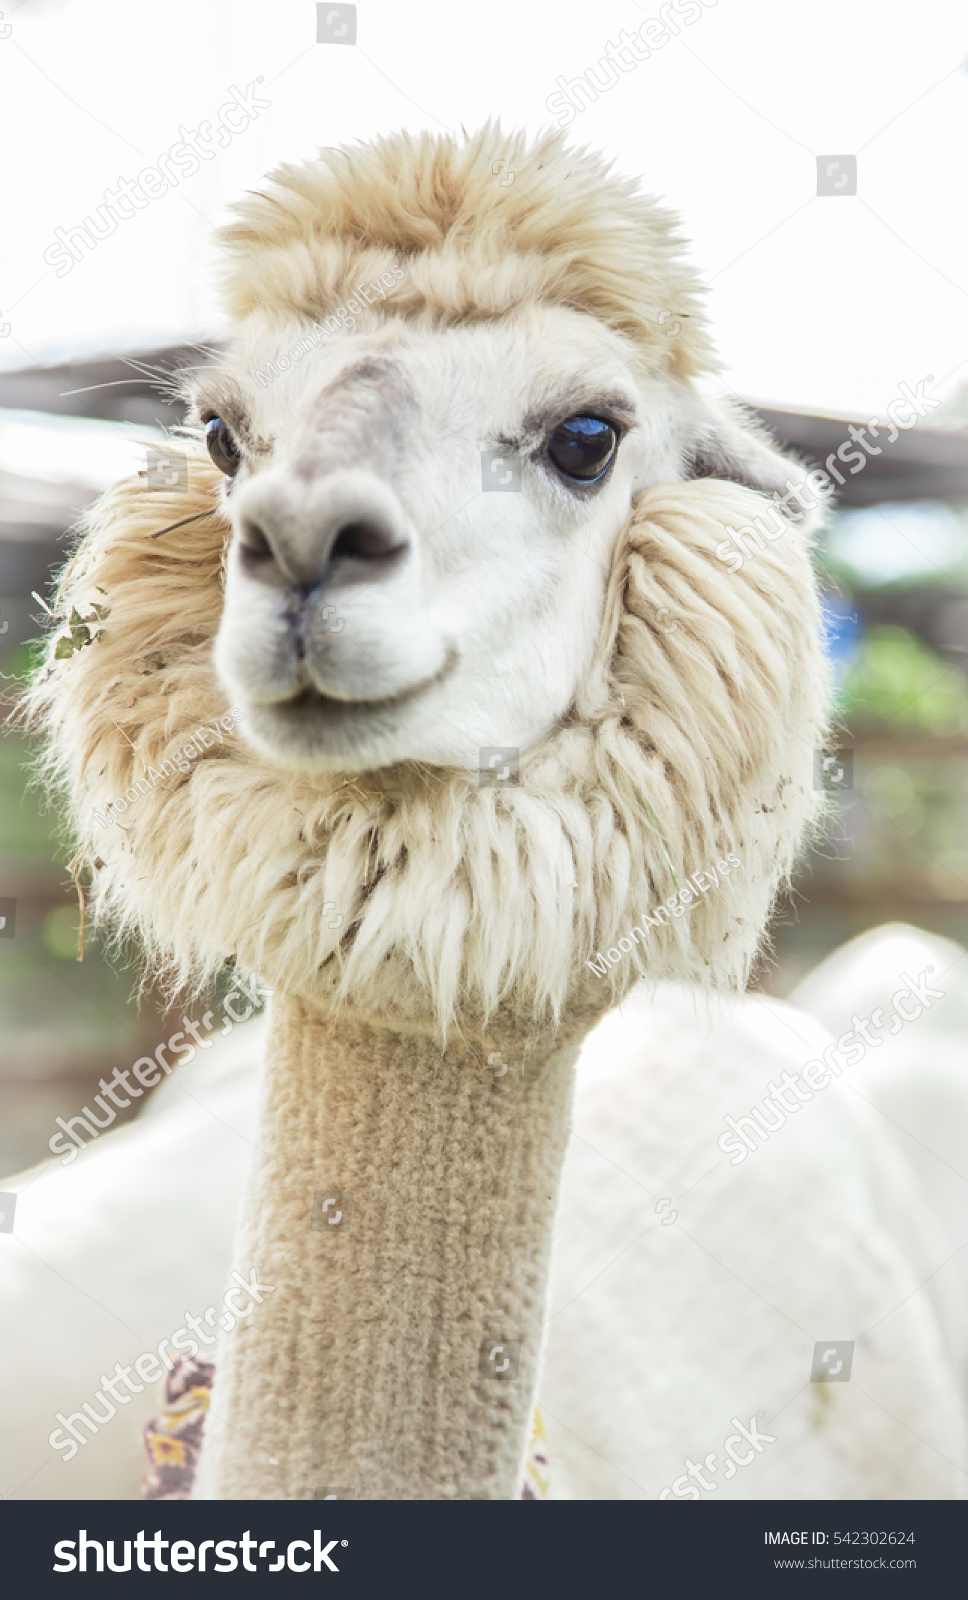 The wonderful alpaca is in the farm on white frame that funny alpaca smile and teeth white llama close-up